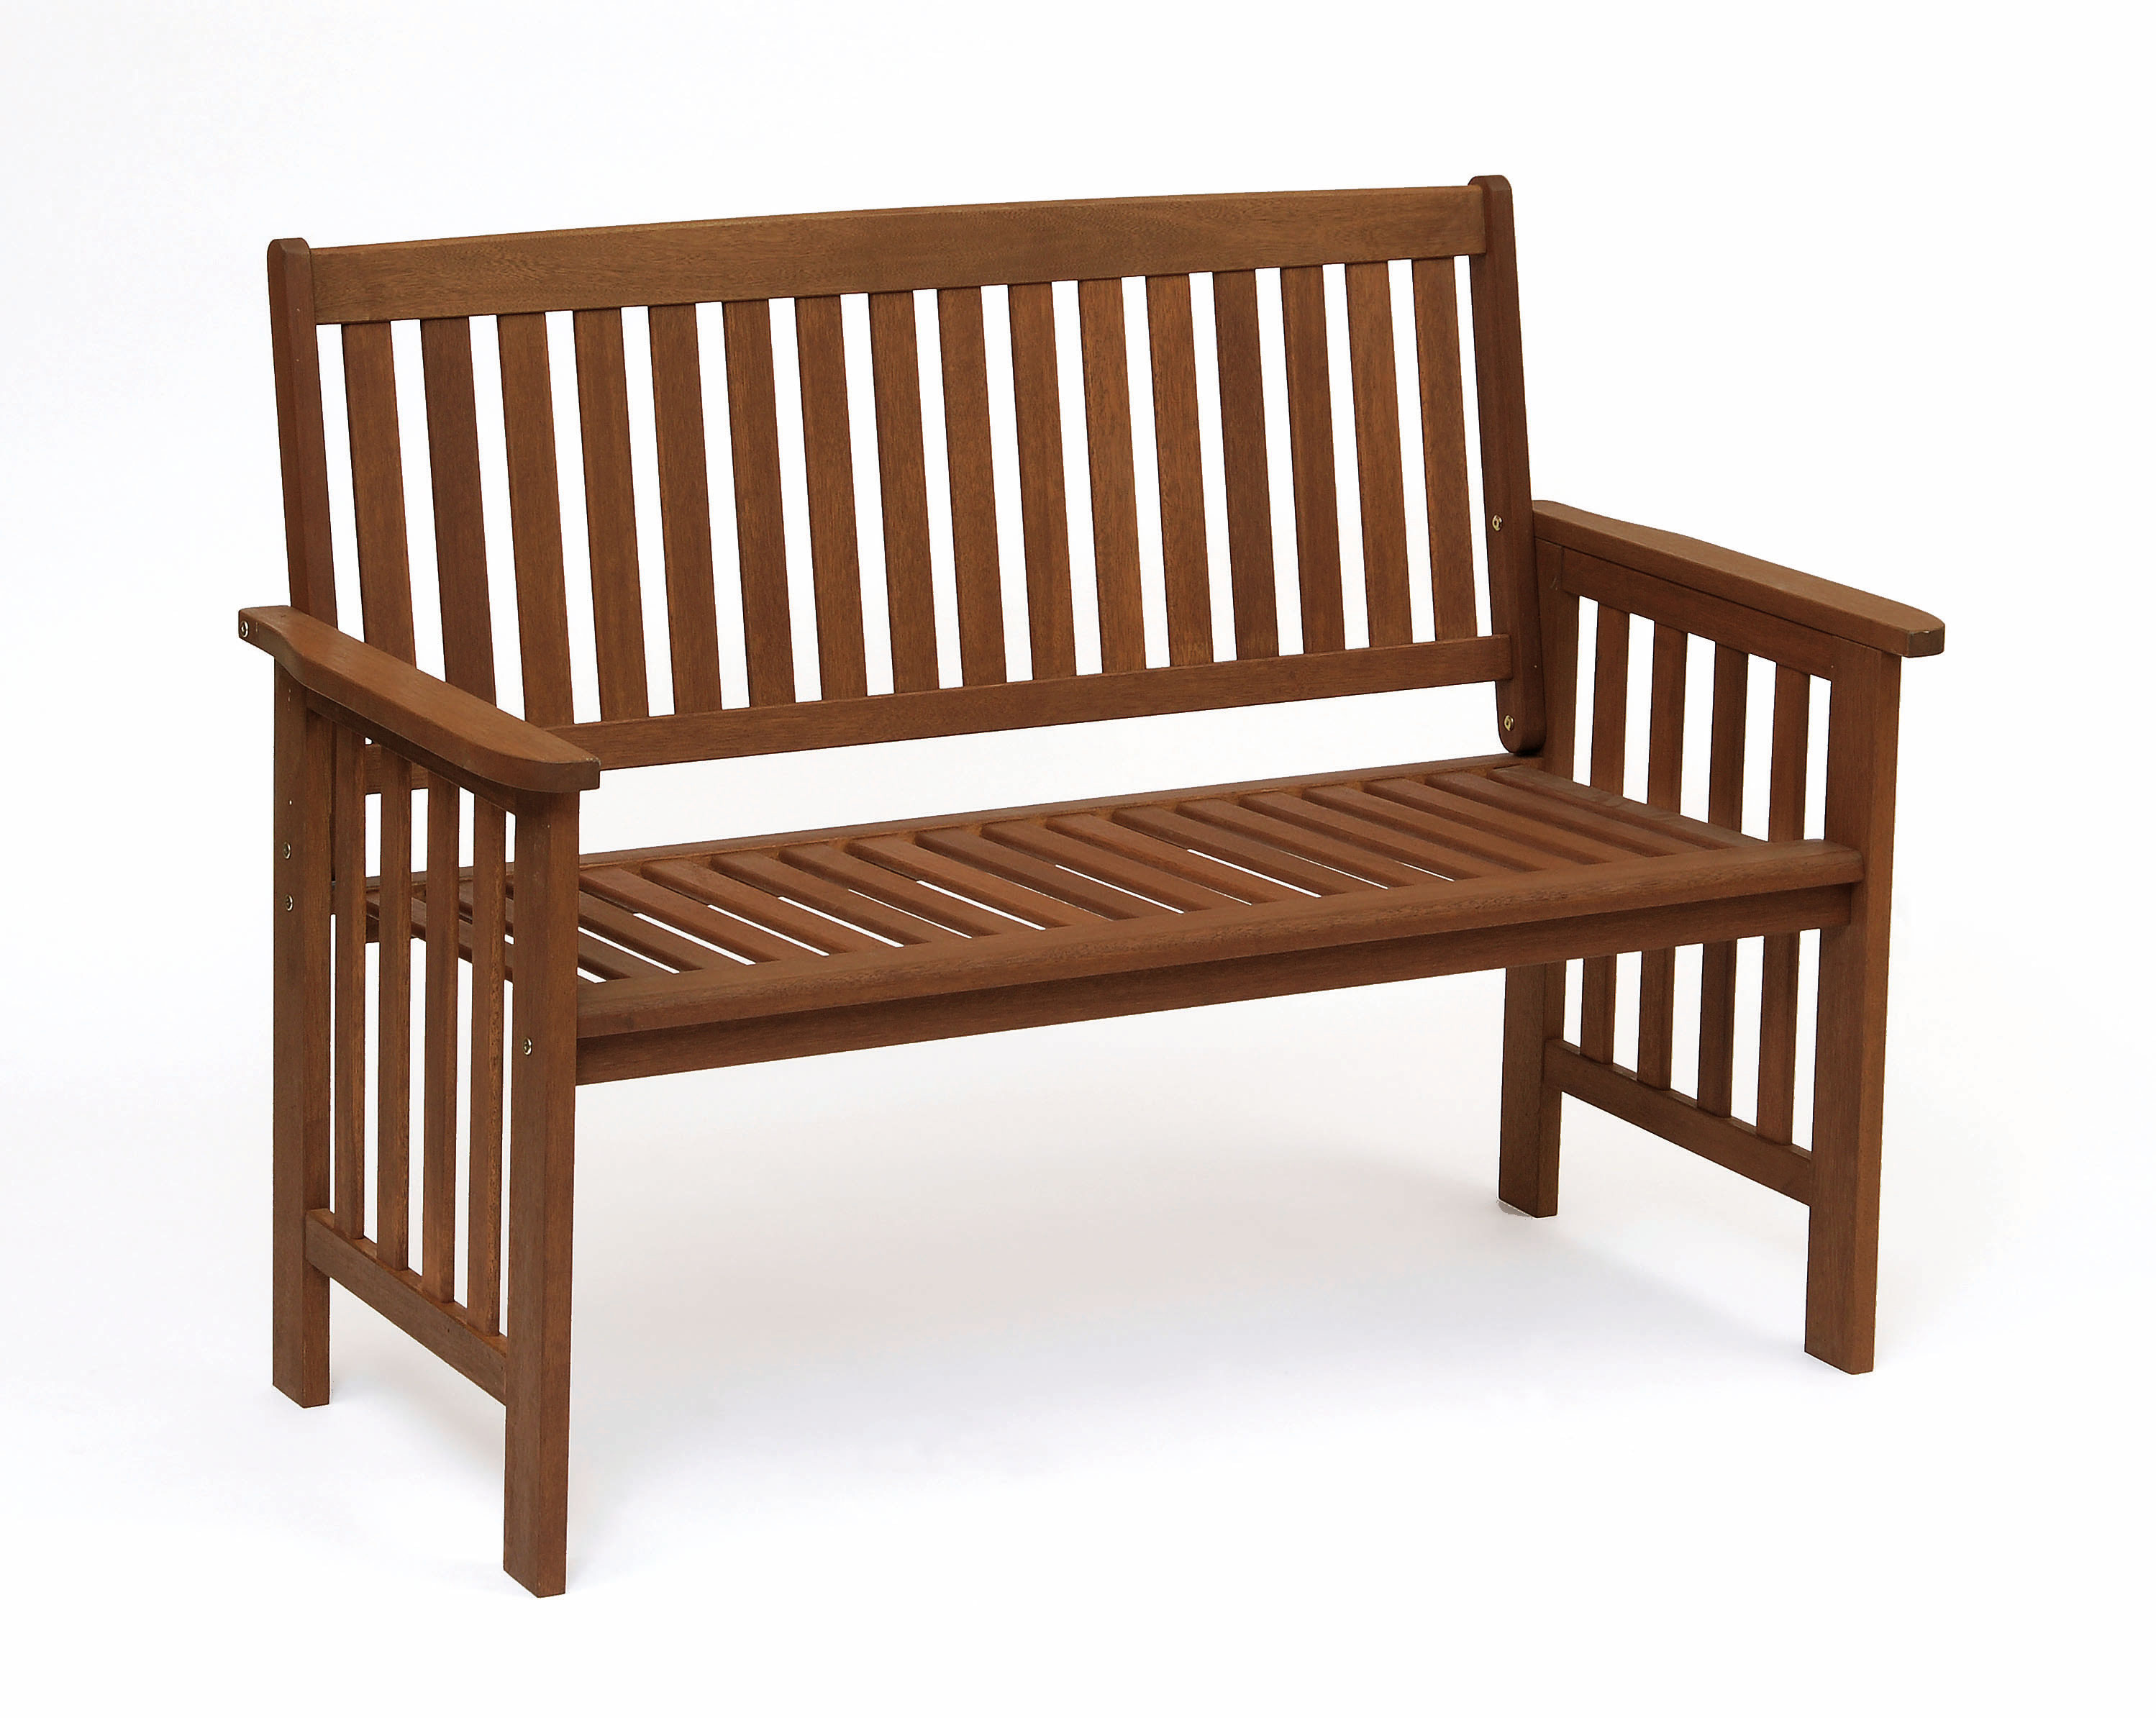 Buy cheap hardwood garden bench compare sheds garden furniture prices for best uk deals Cheap outdoor bench